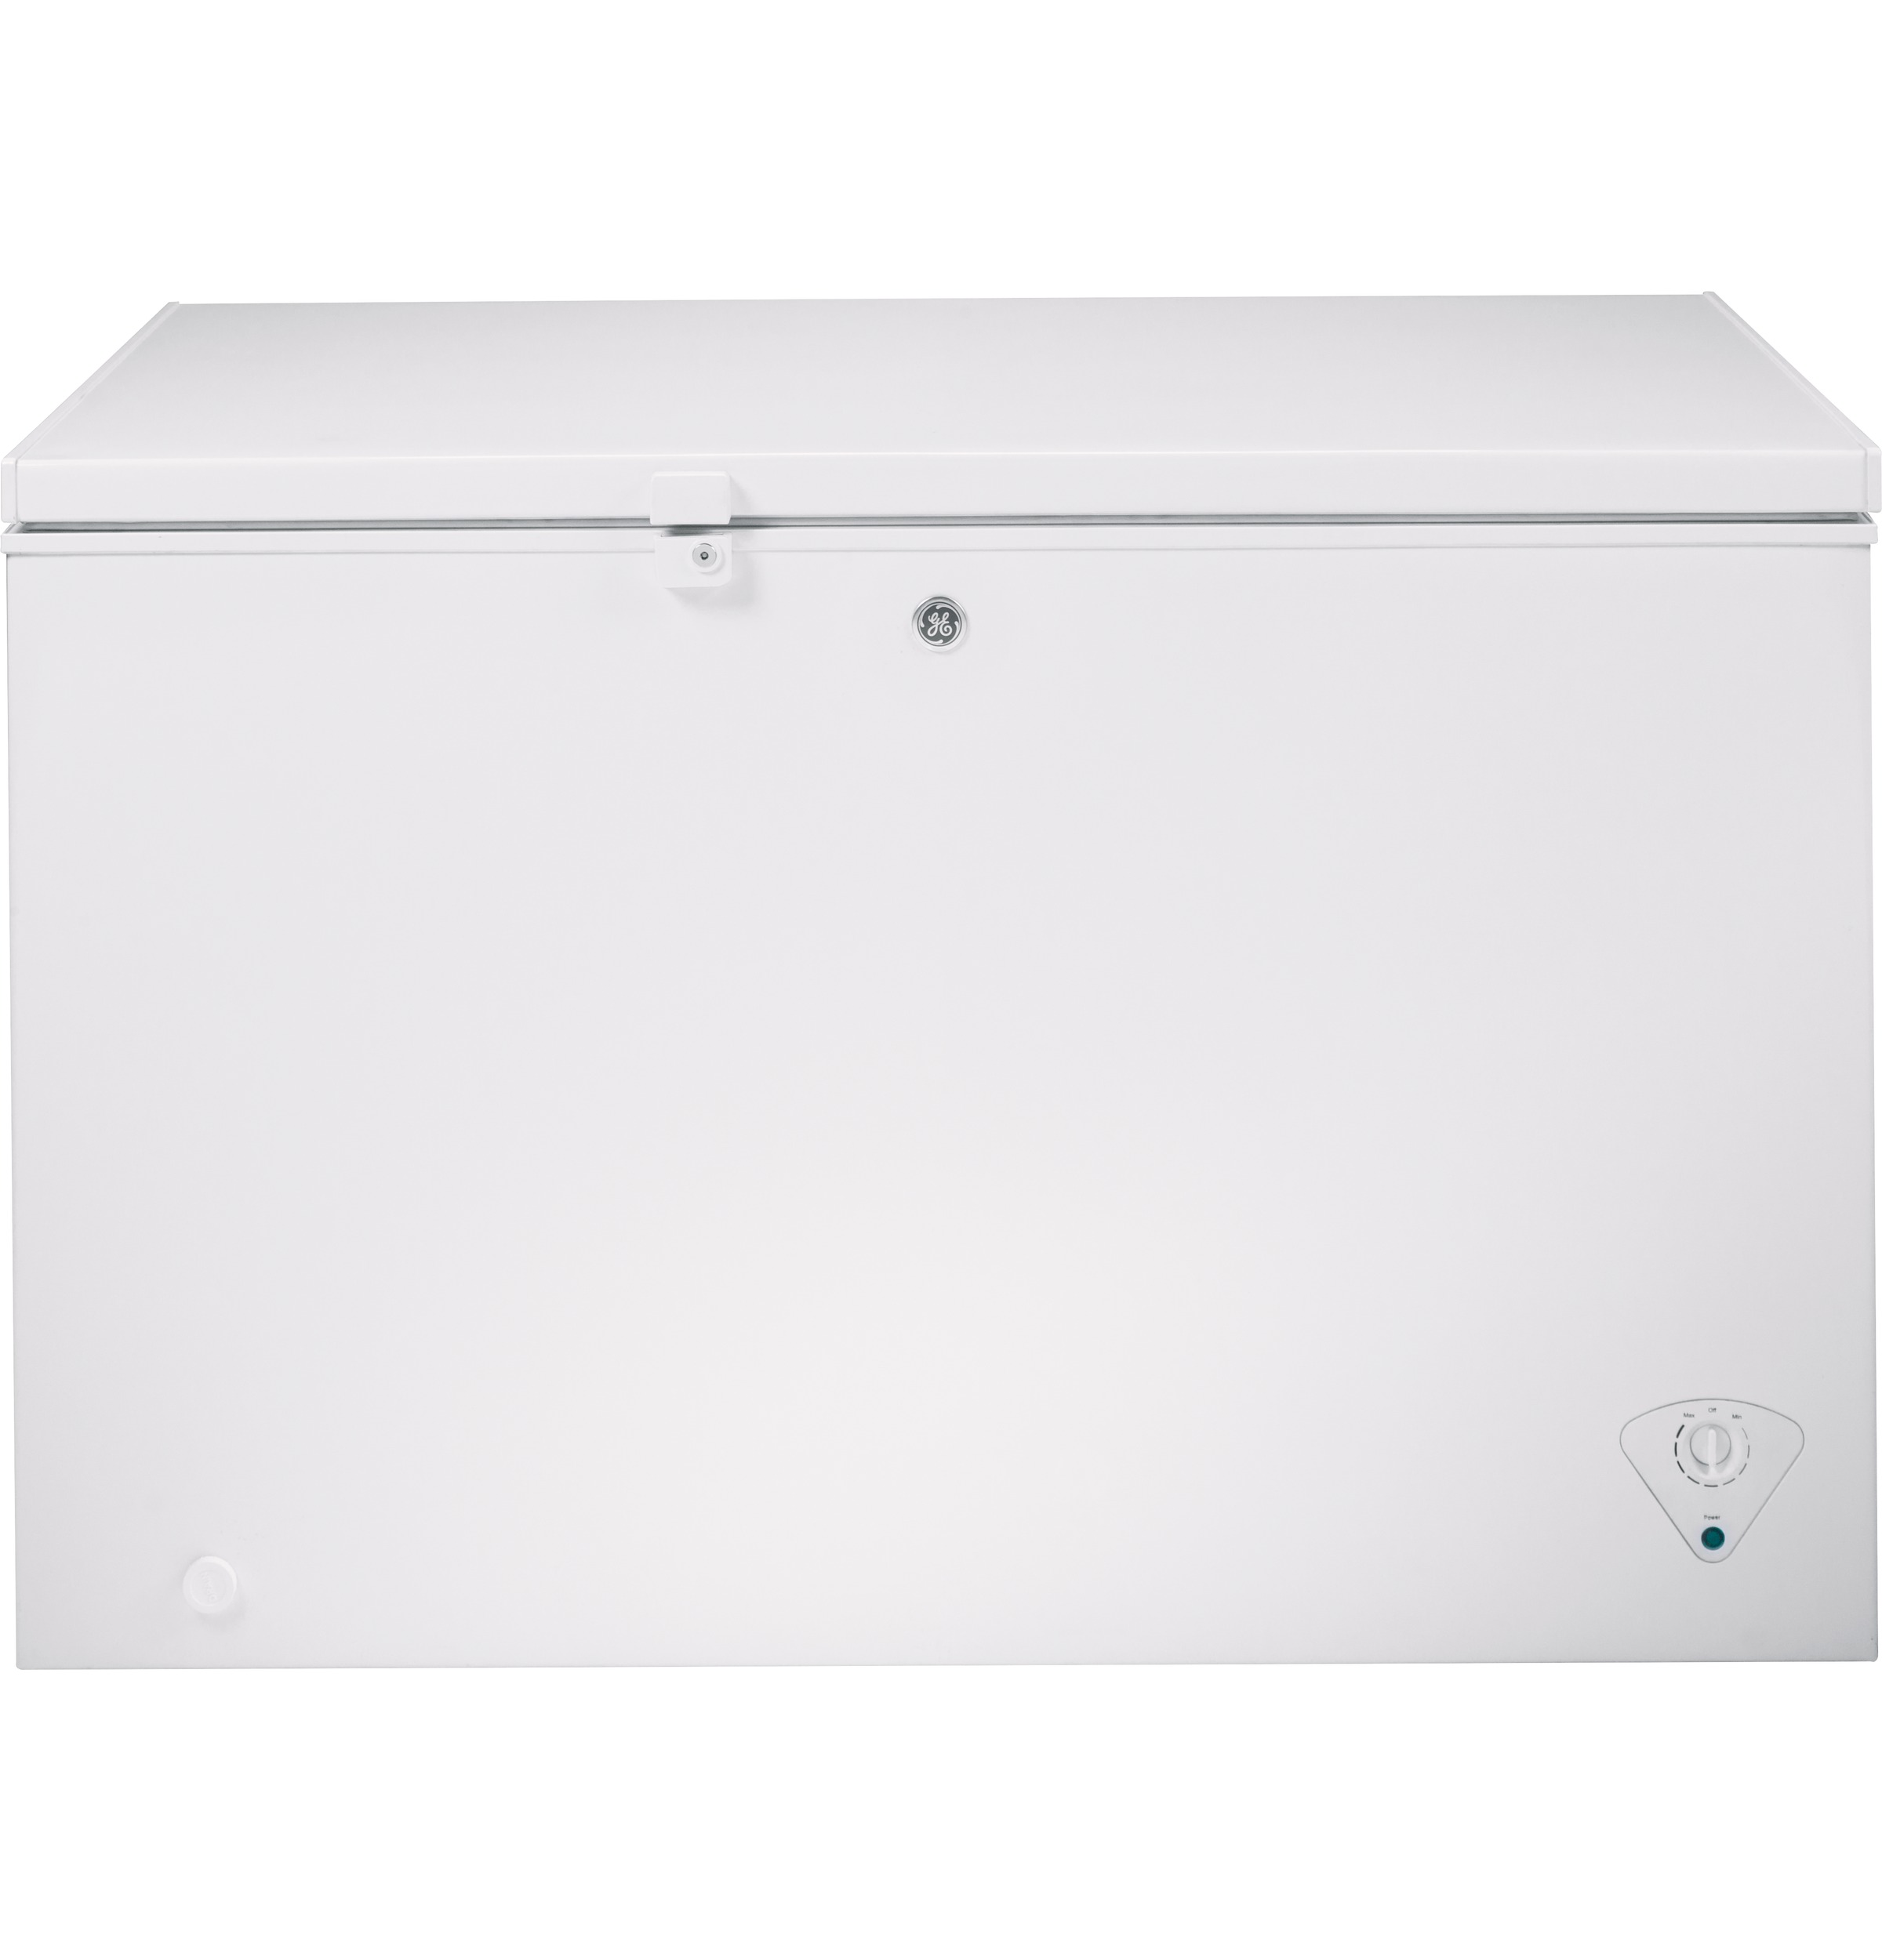 GE GE® ENERGY STAR® 10.6 Cu. Ft. Manual Defrost Chest Freezer